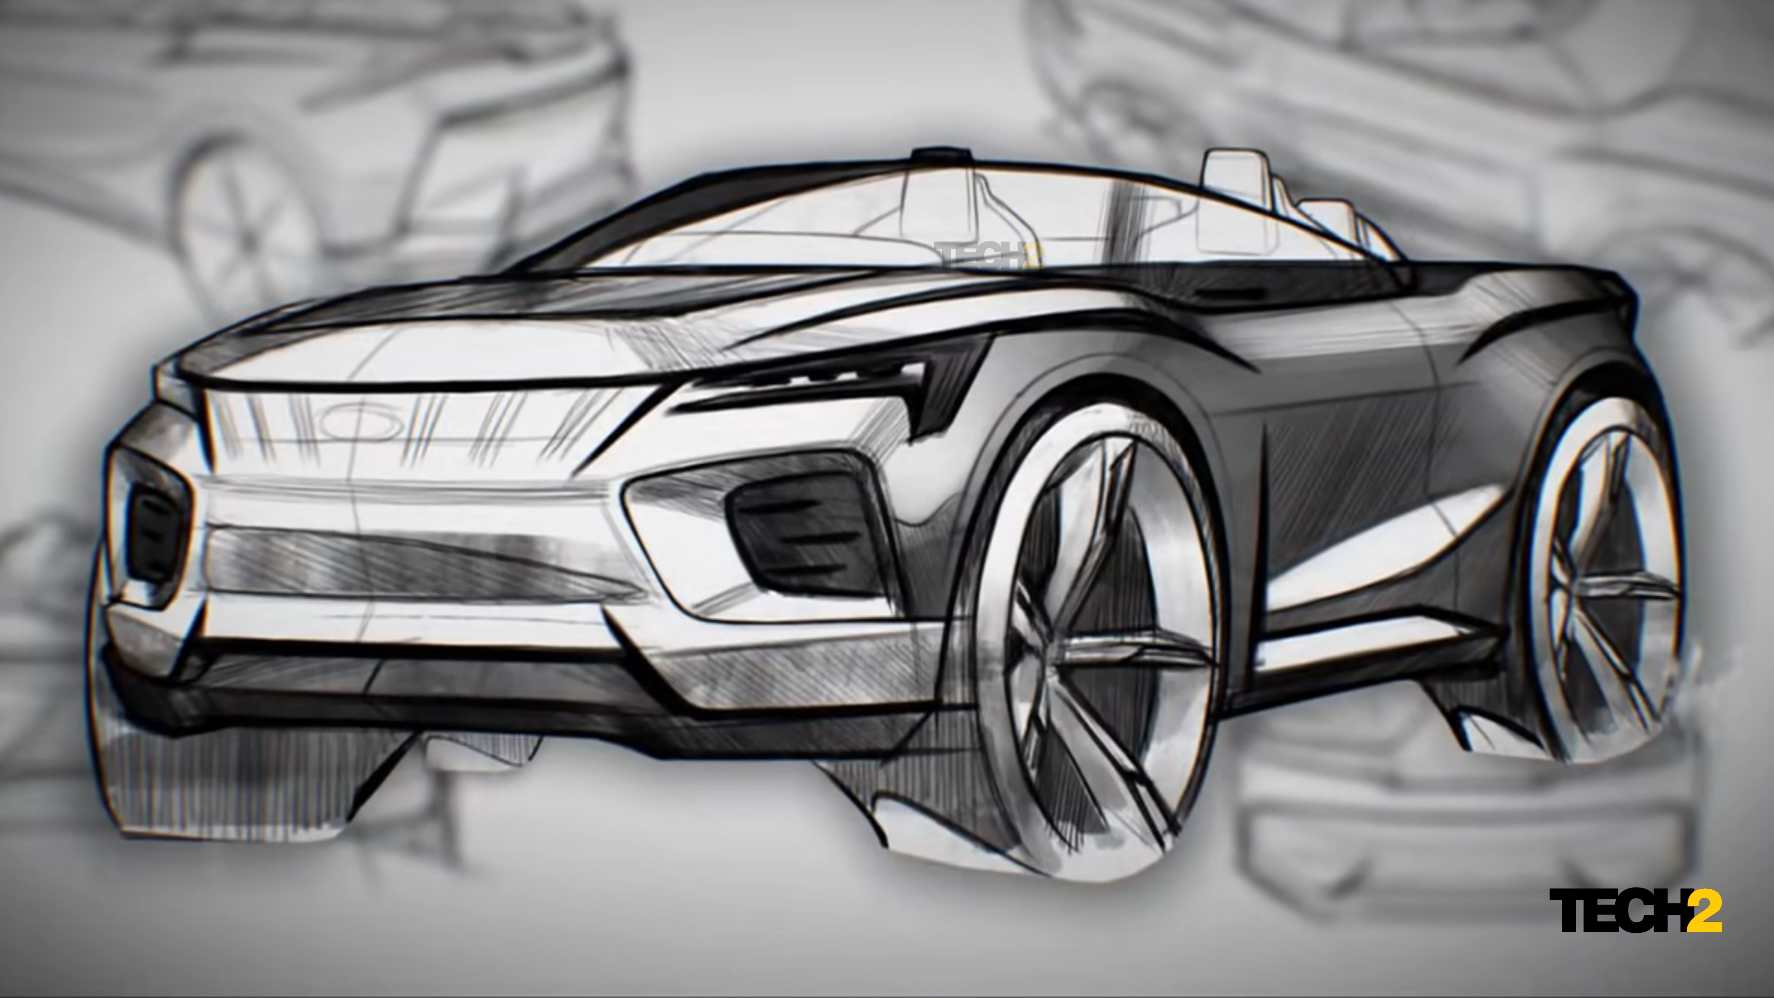 Mahindra's new design centre in the UK will shape the brand's future models, including electric SUVs. Image: Mahindra